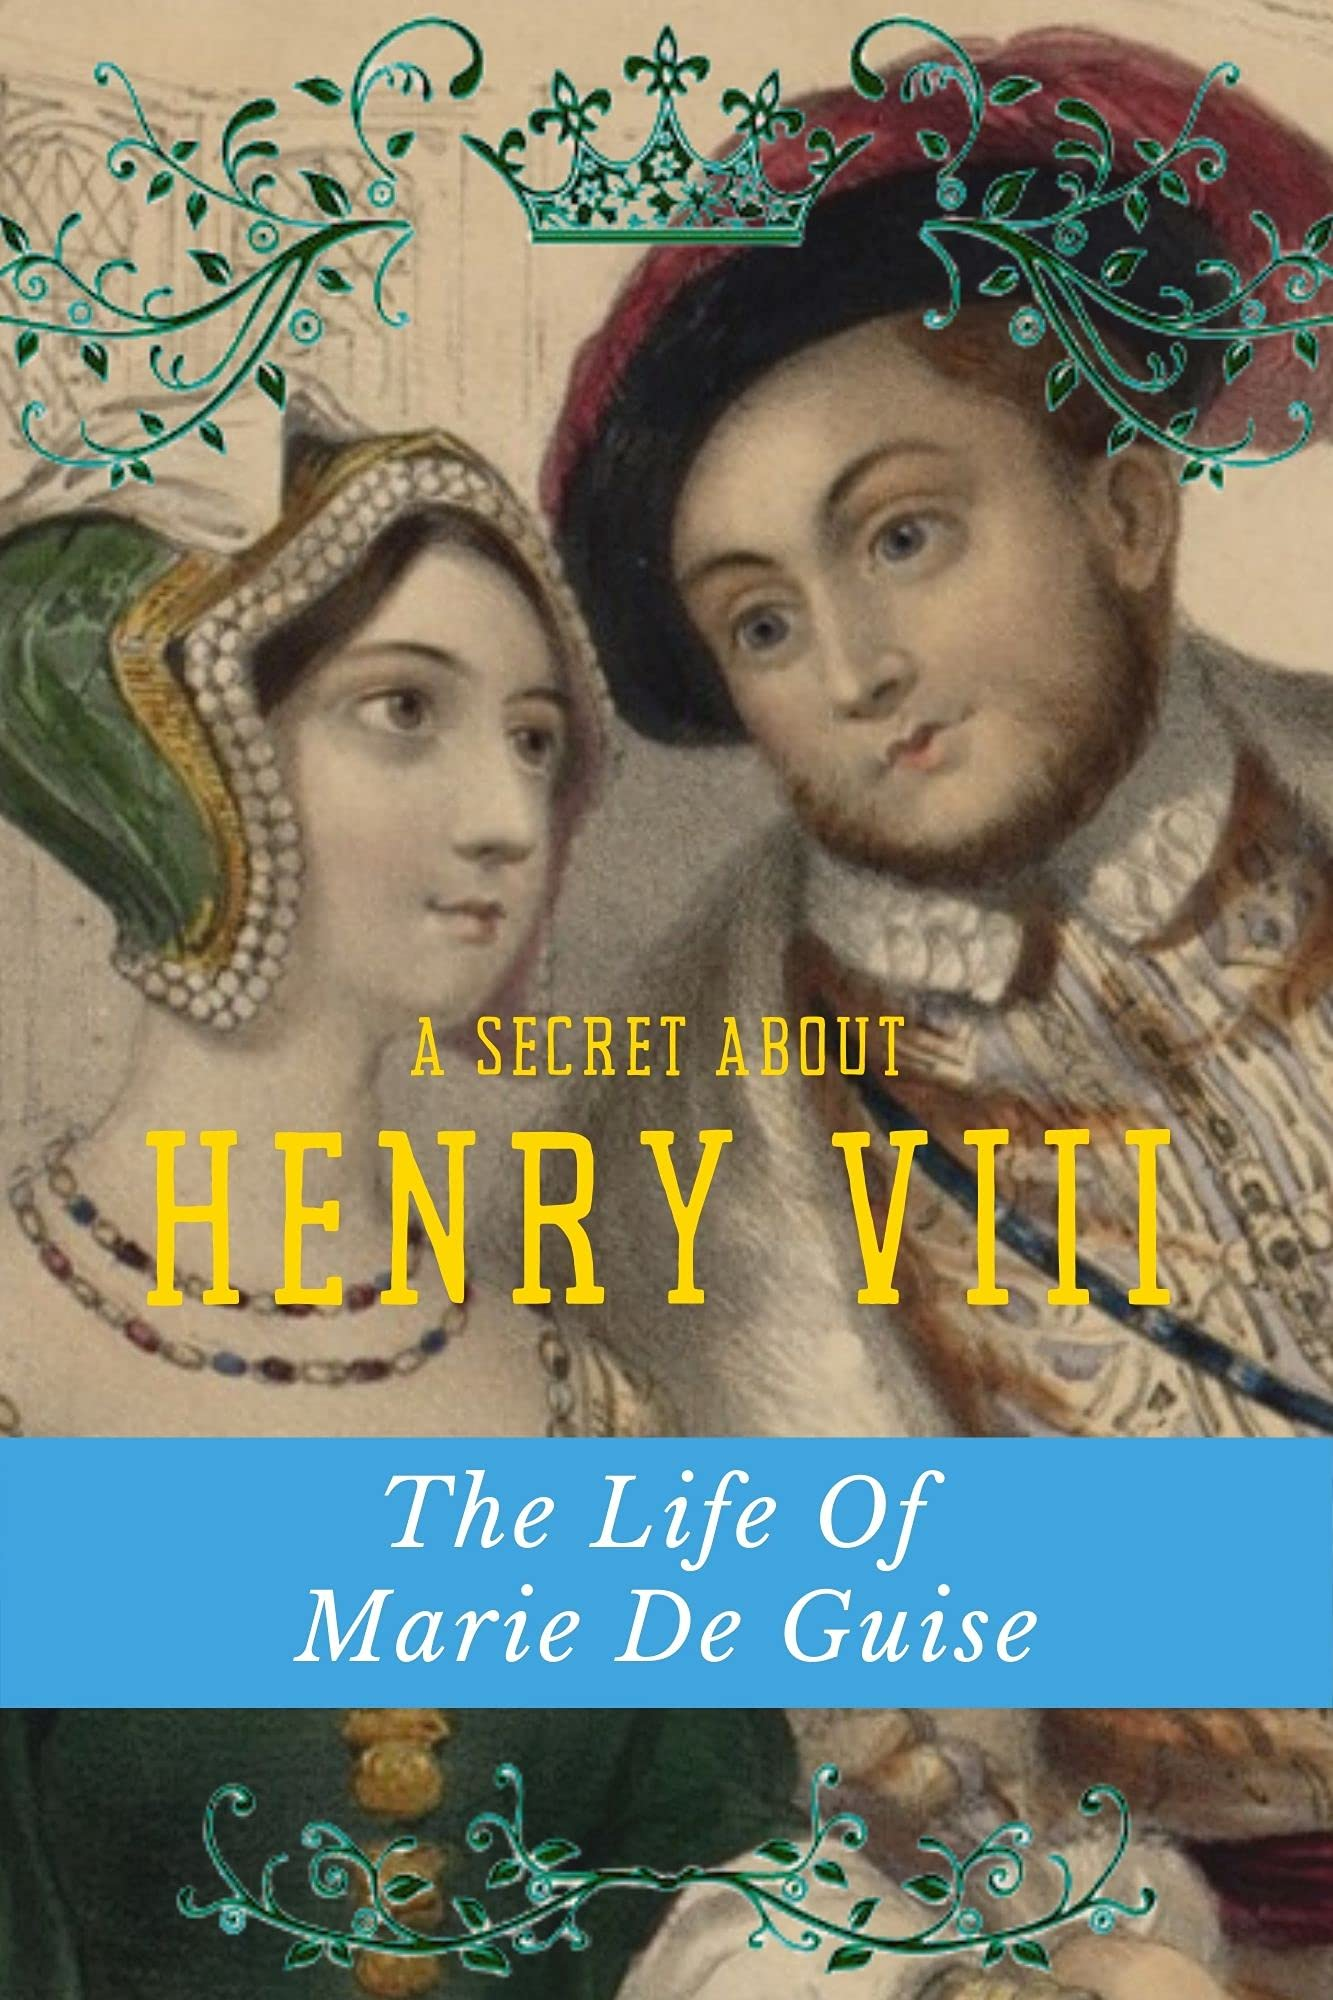 A Secret About Henry VIII: The Life Of Marie De Guise: Books About Royalty Nonfiction